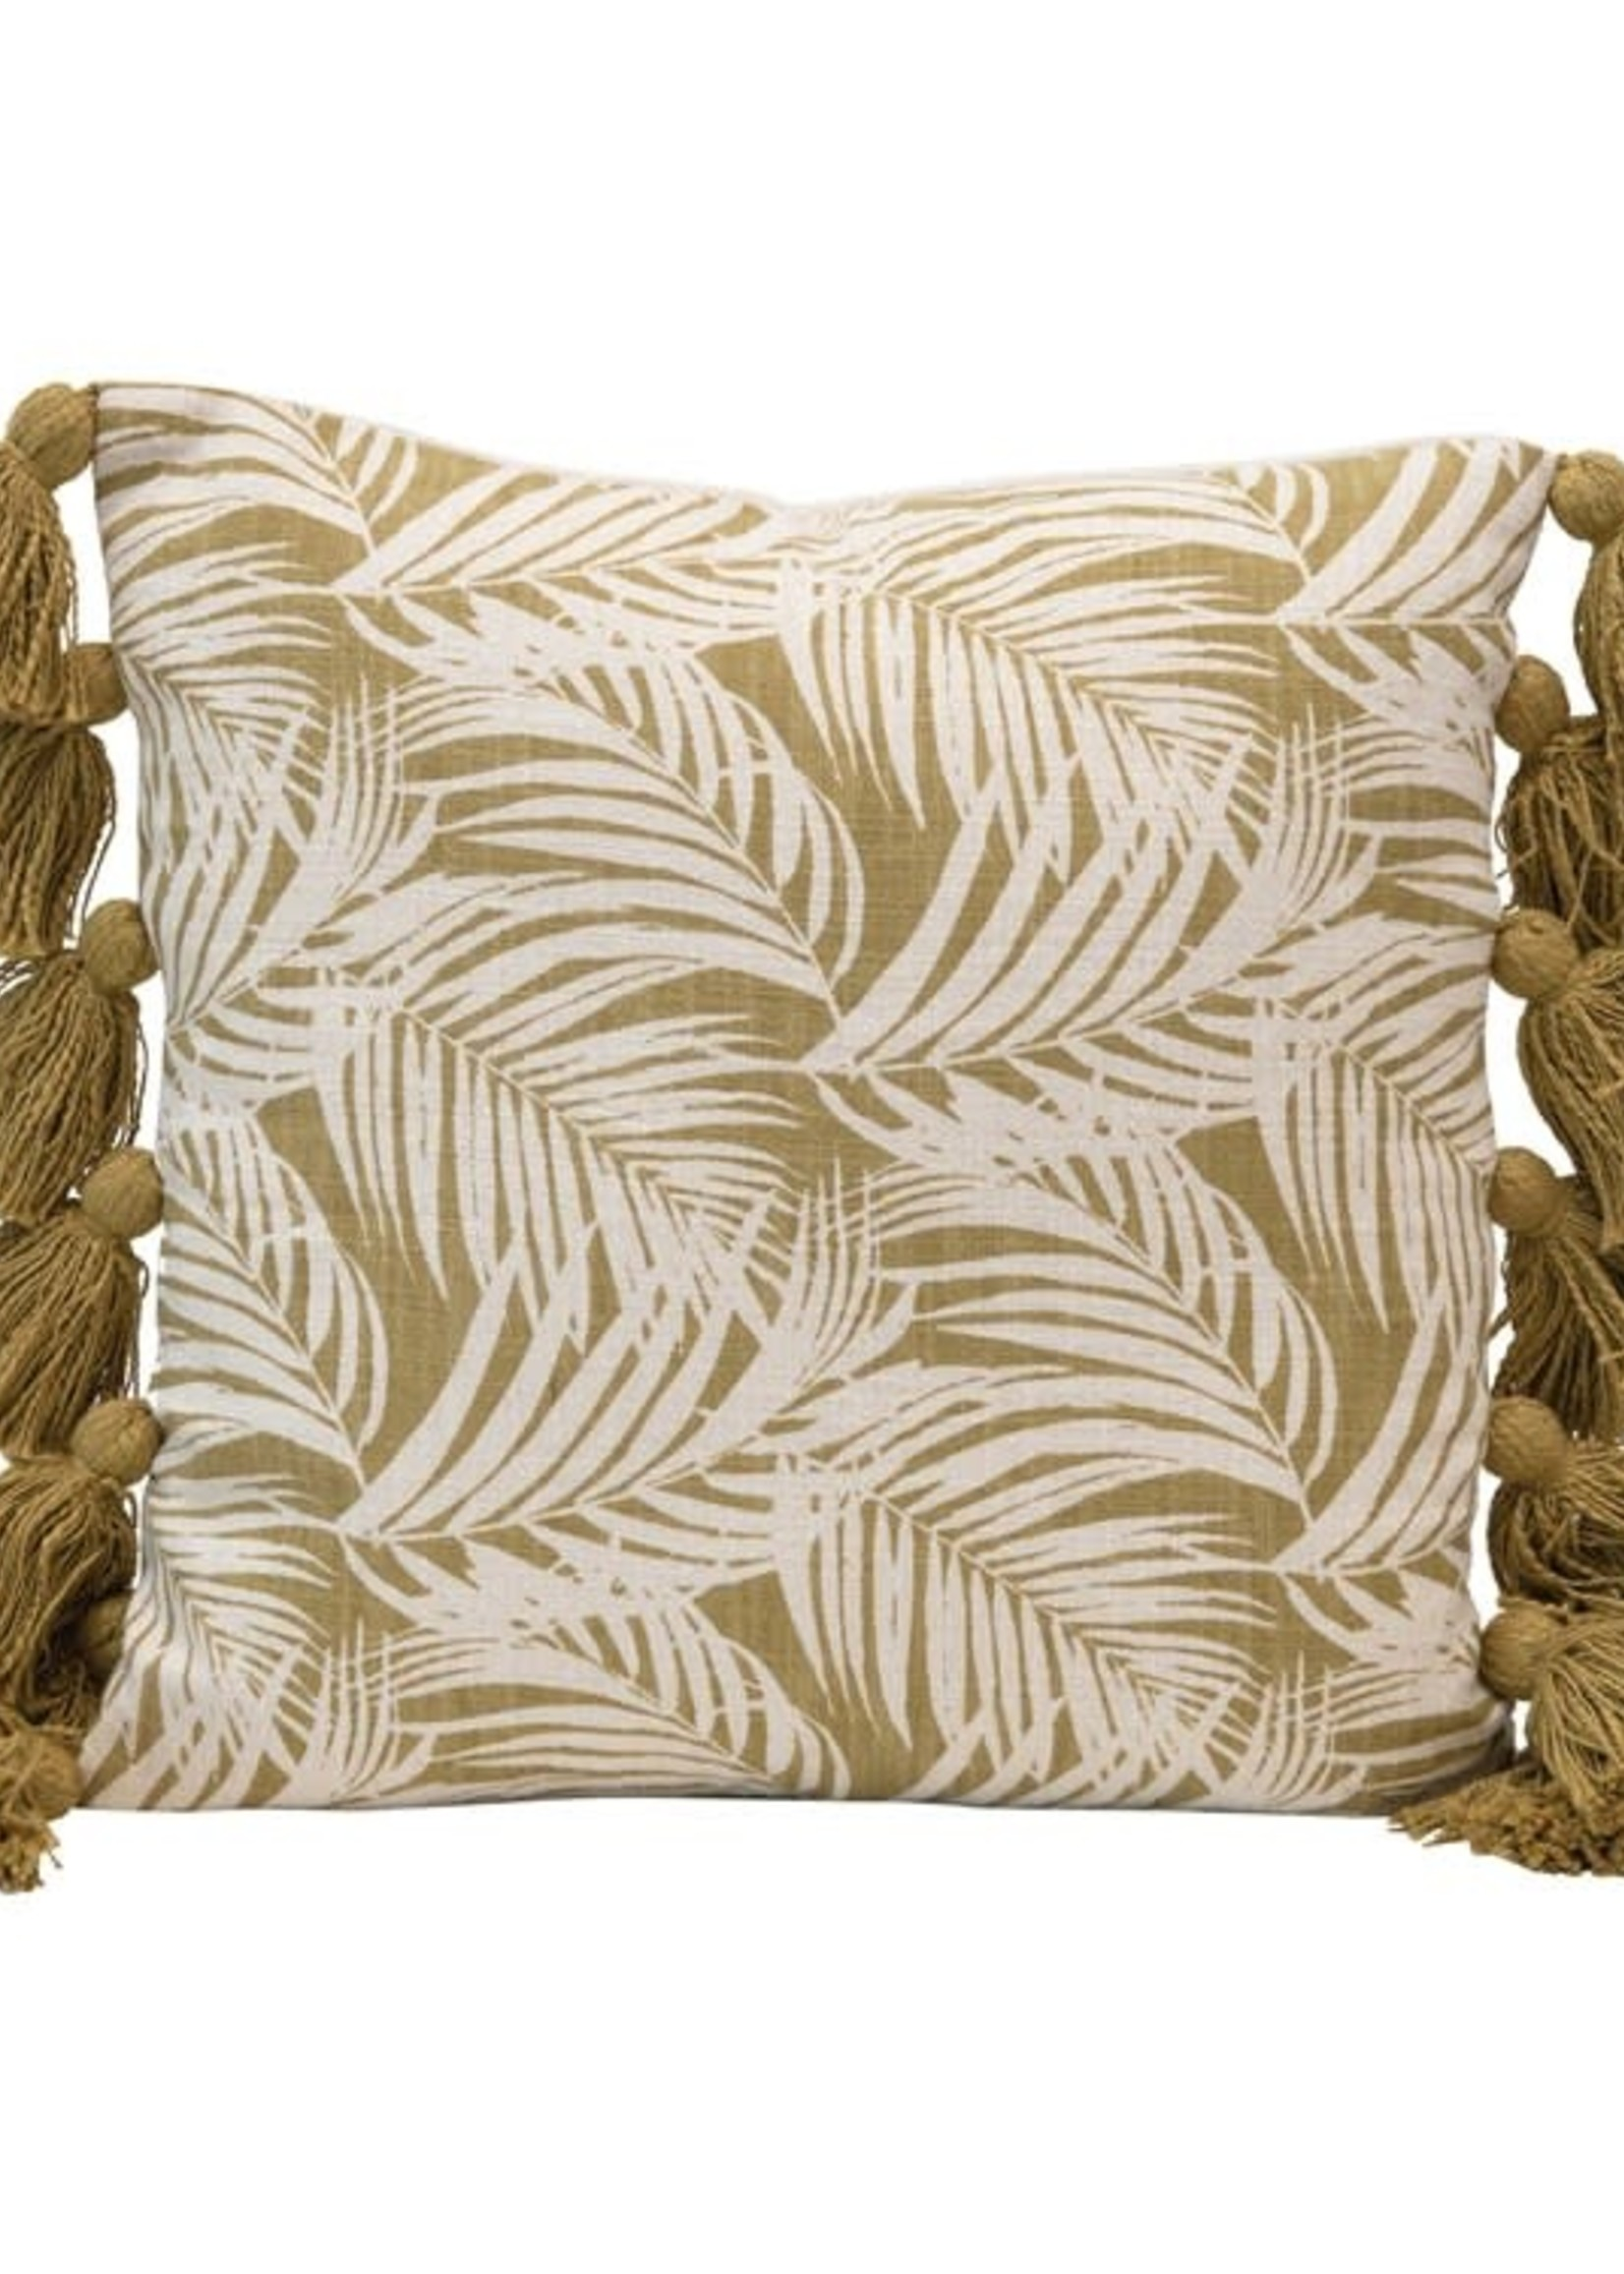 Square Cotton Pillow w/ Palm Frond Pattern & Tassels, Green & Natural